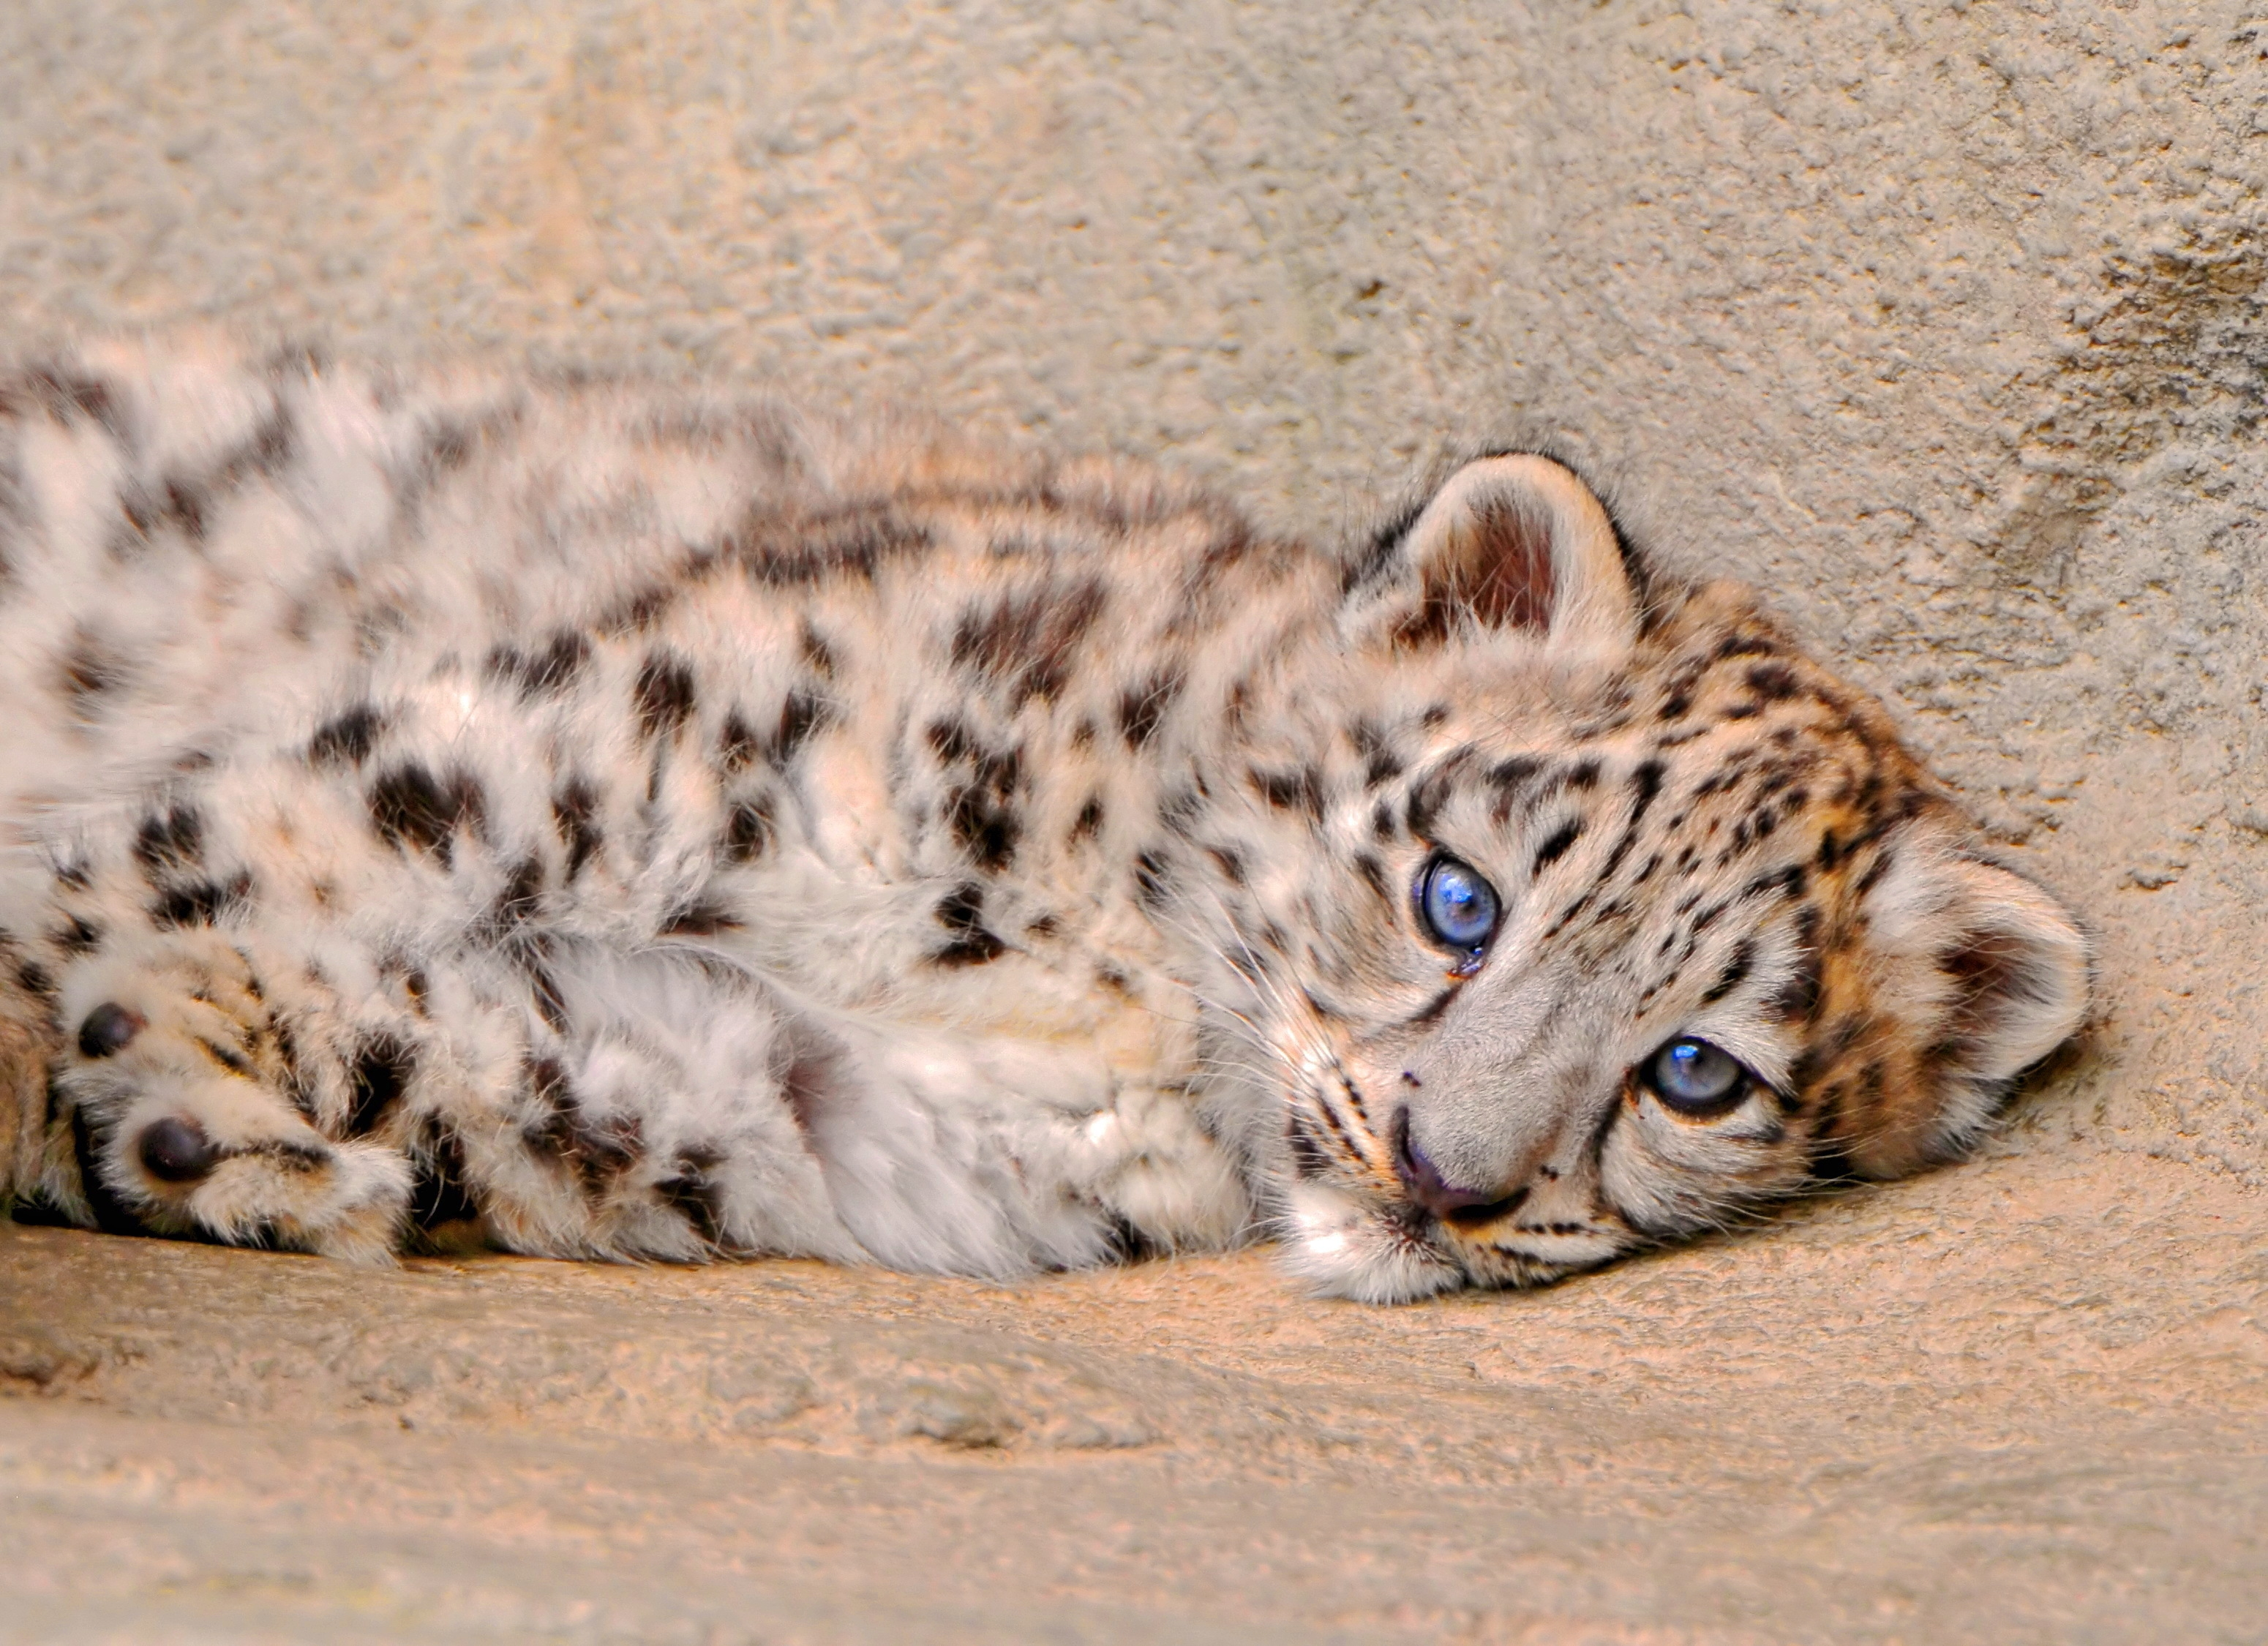 70905 download wallpaper Animals, Young, Joey, To Lie Down, Lie, Sight, Opinion, Sadness, Sorrow, Snow Leopard screensavers and pictures for free